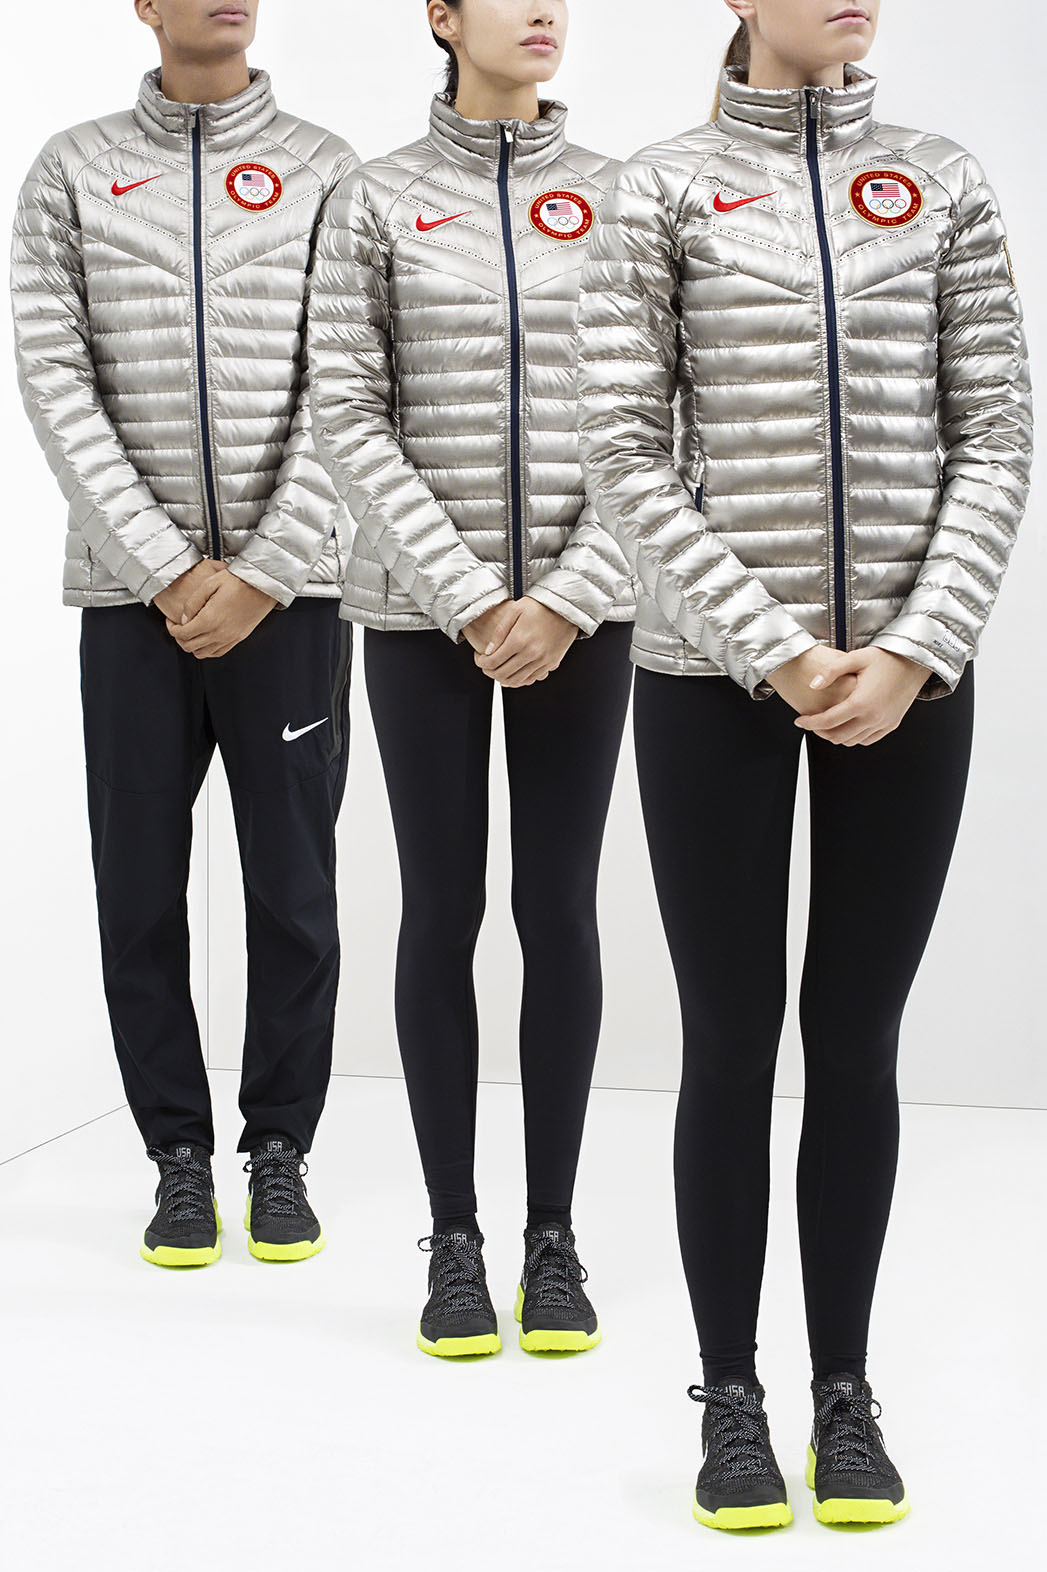 Cayo explorar apagado  Nike Outfits U.S. Athletes in Slick Silver and Fleece for 2014 Sochi  Olympics | Hollywood Reporter